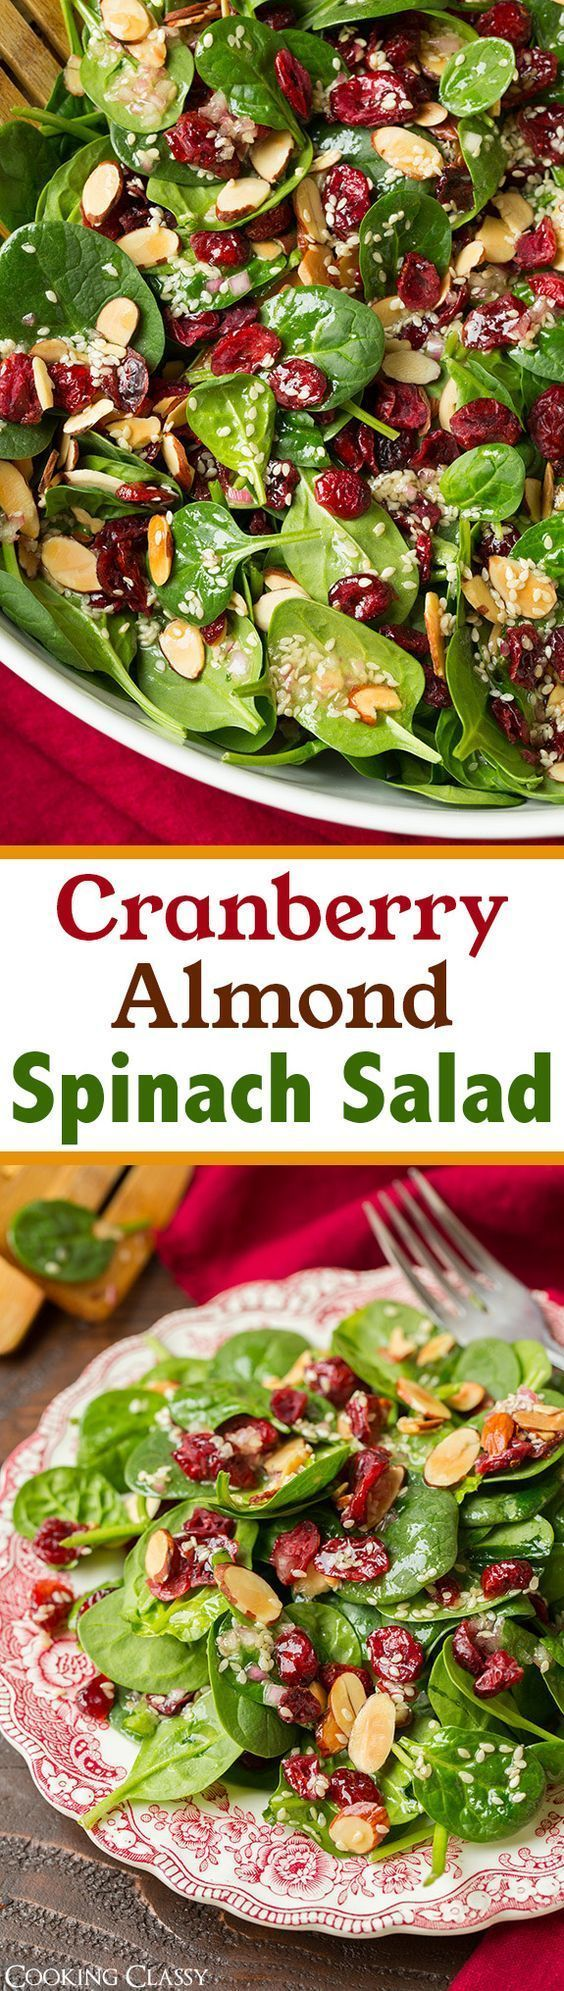 Cranberry Almond Spinach Salad Recipe | Buzz Inspired